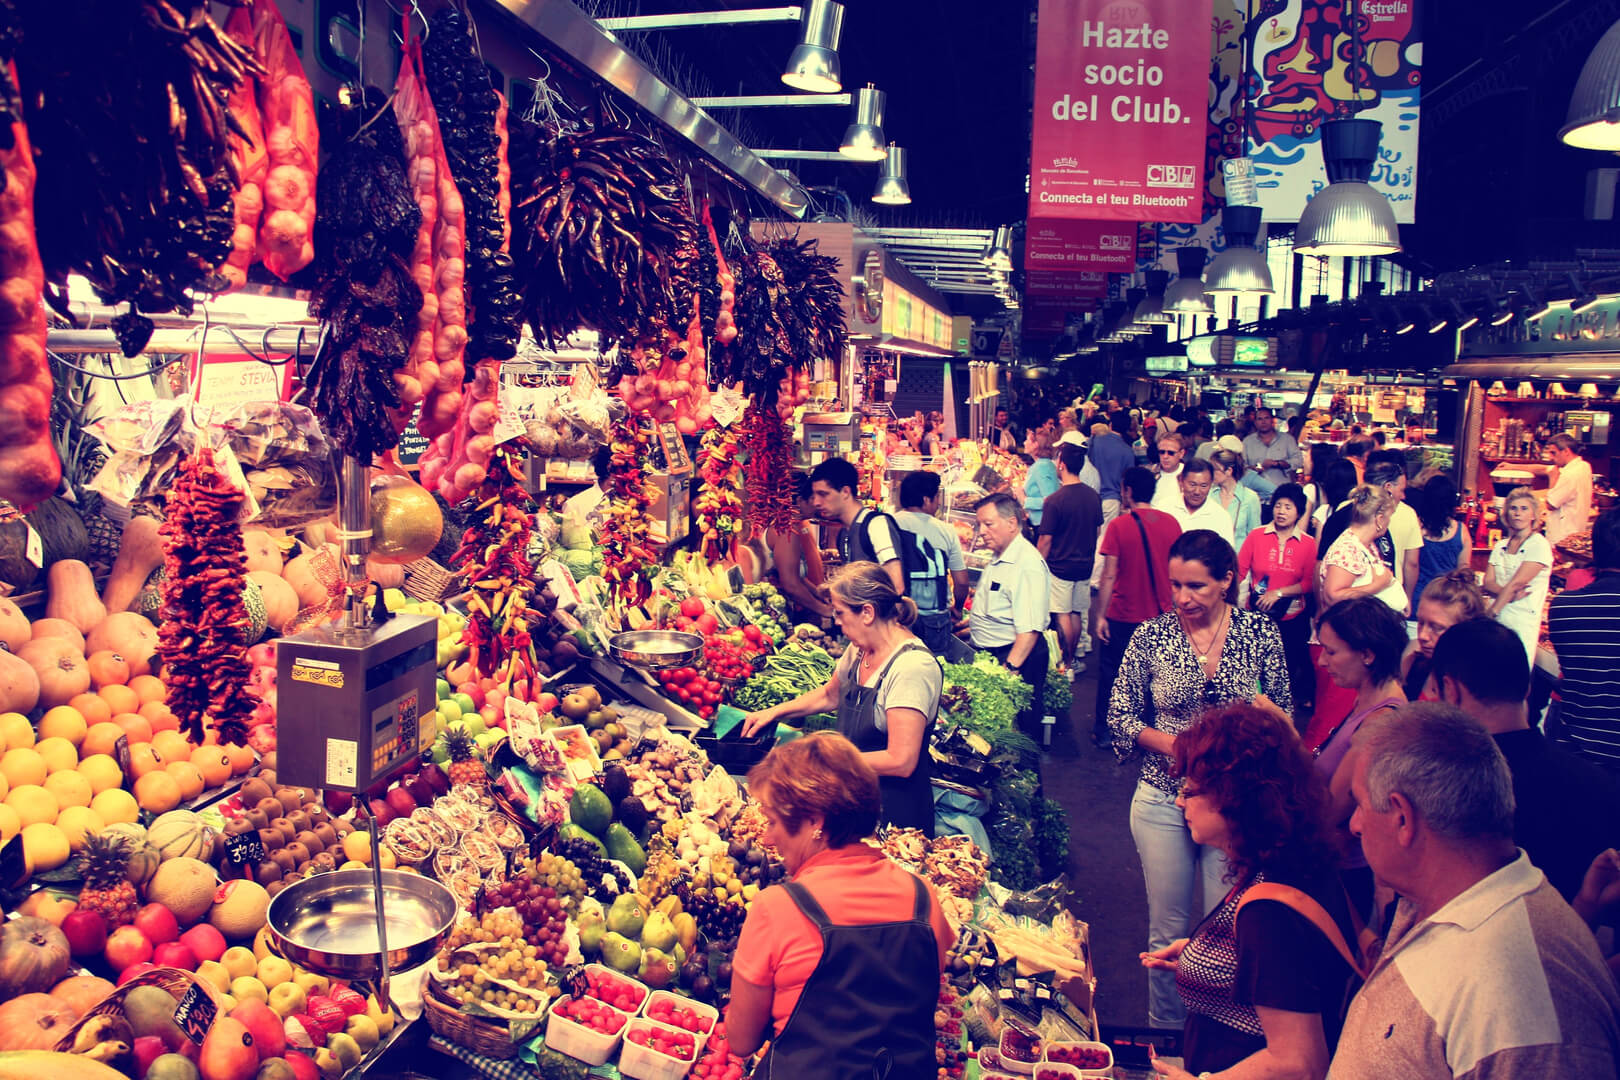 Tourists visit famous La Boqueria market in Barcelona. One of the oldest markets in Europe that still exist.